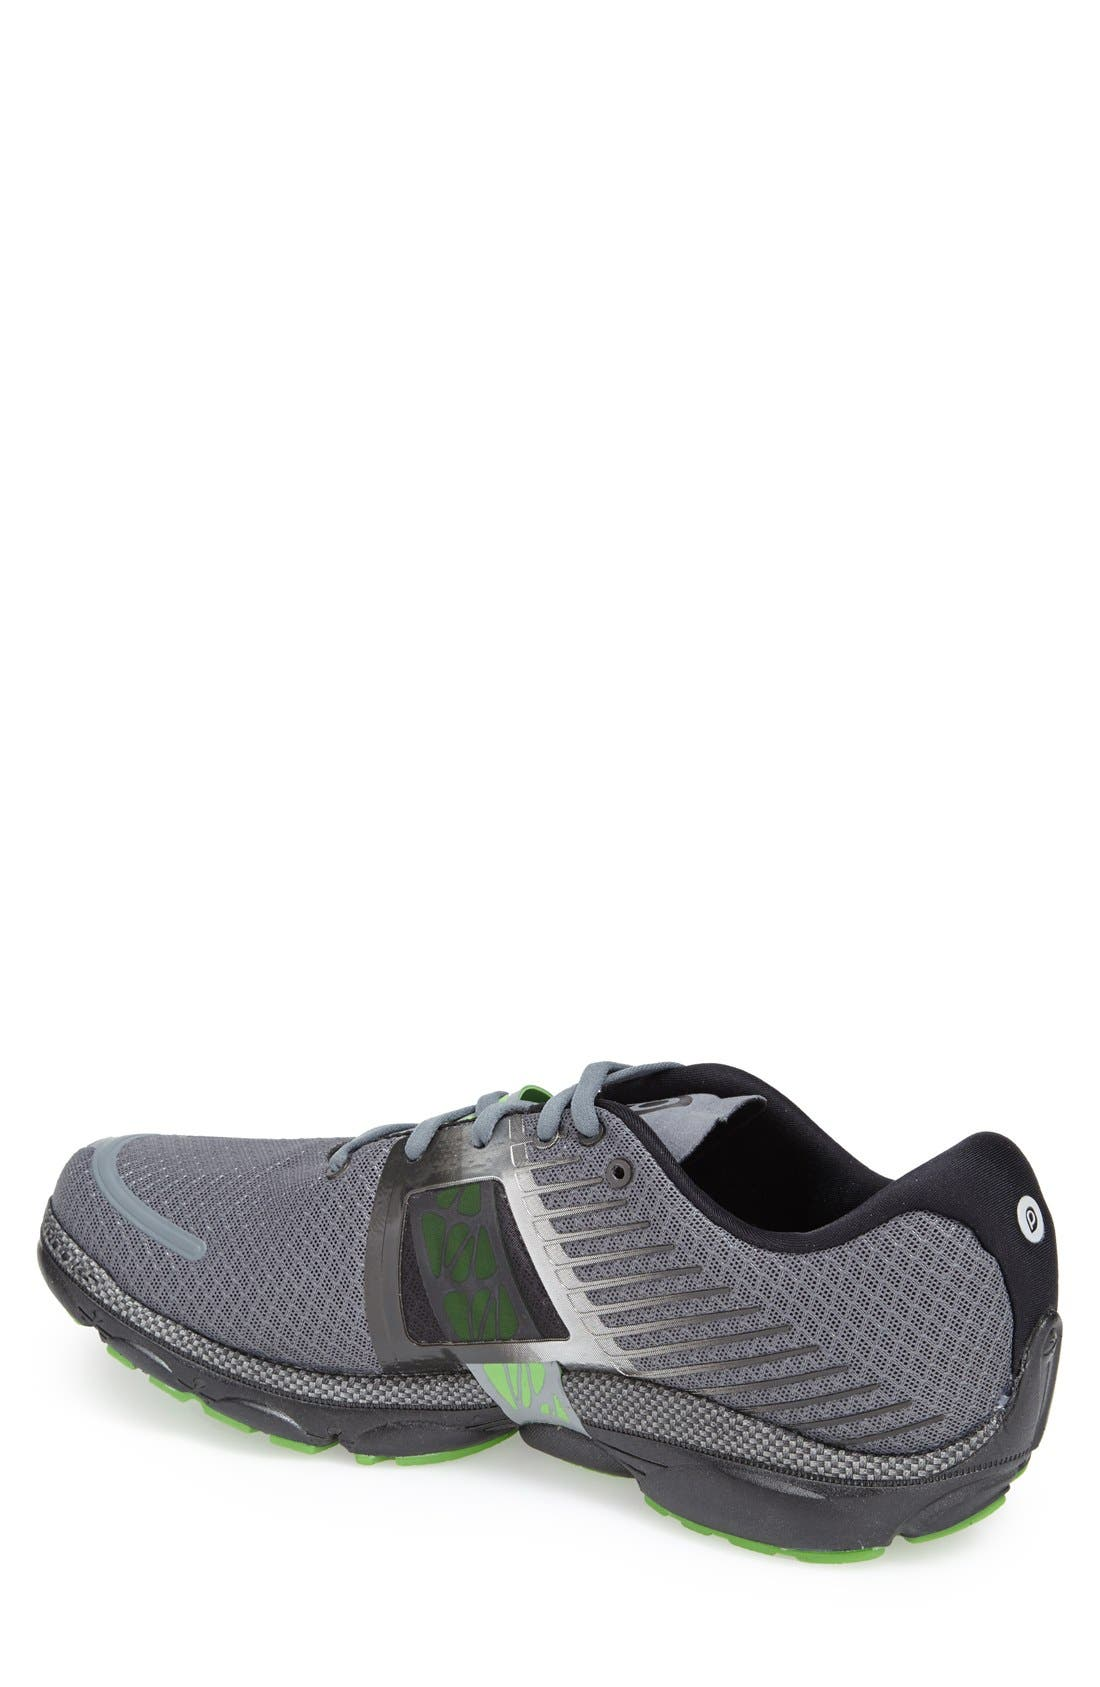 'Pure Cadence 4' Running Shoe,                             Alternate thumbnail 3, color,                             039